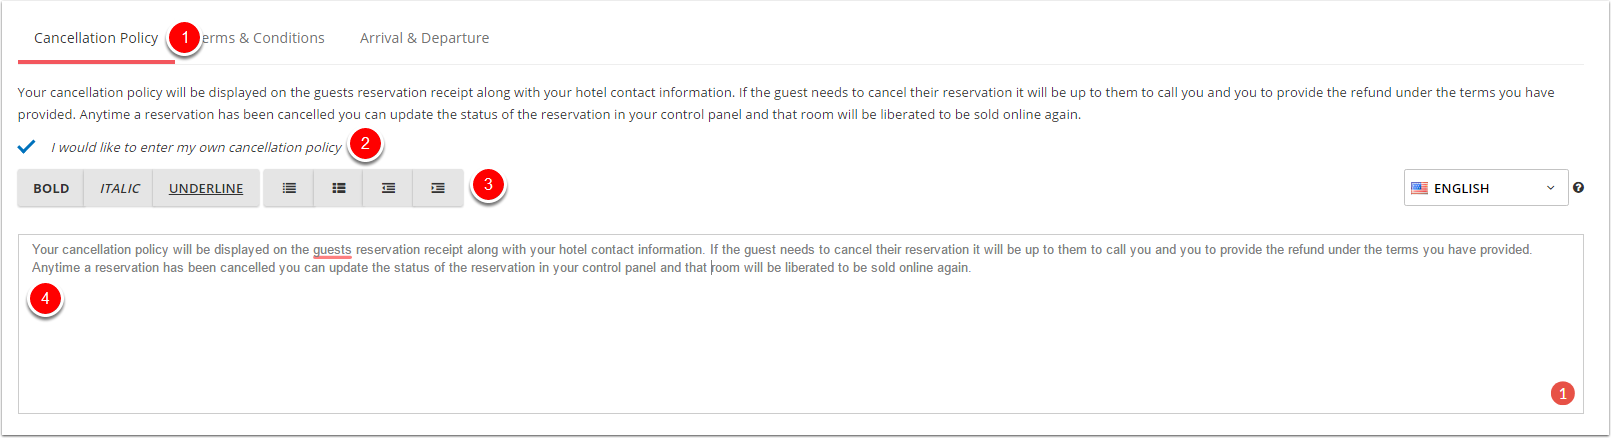 manual hotel booking system